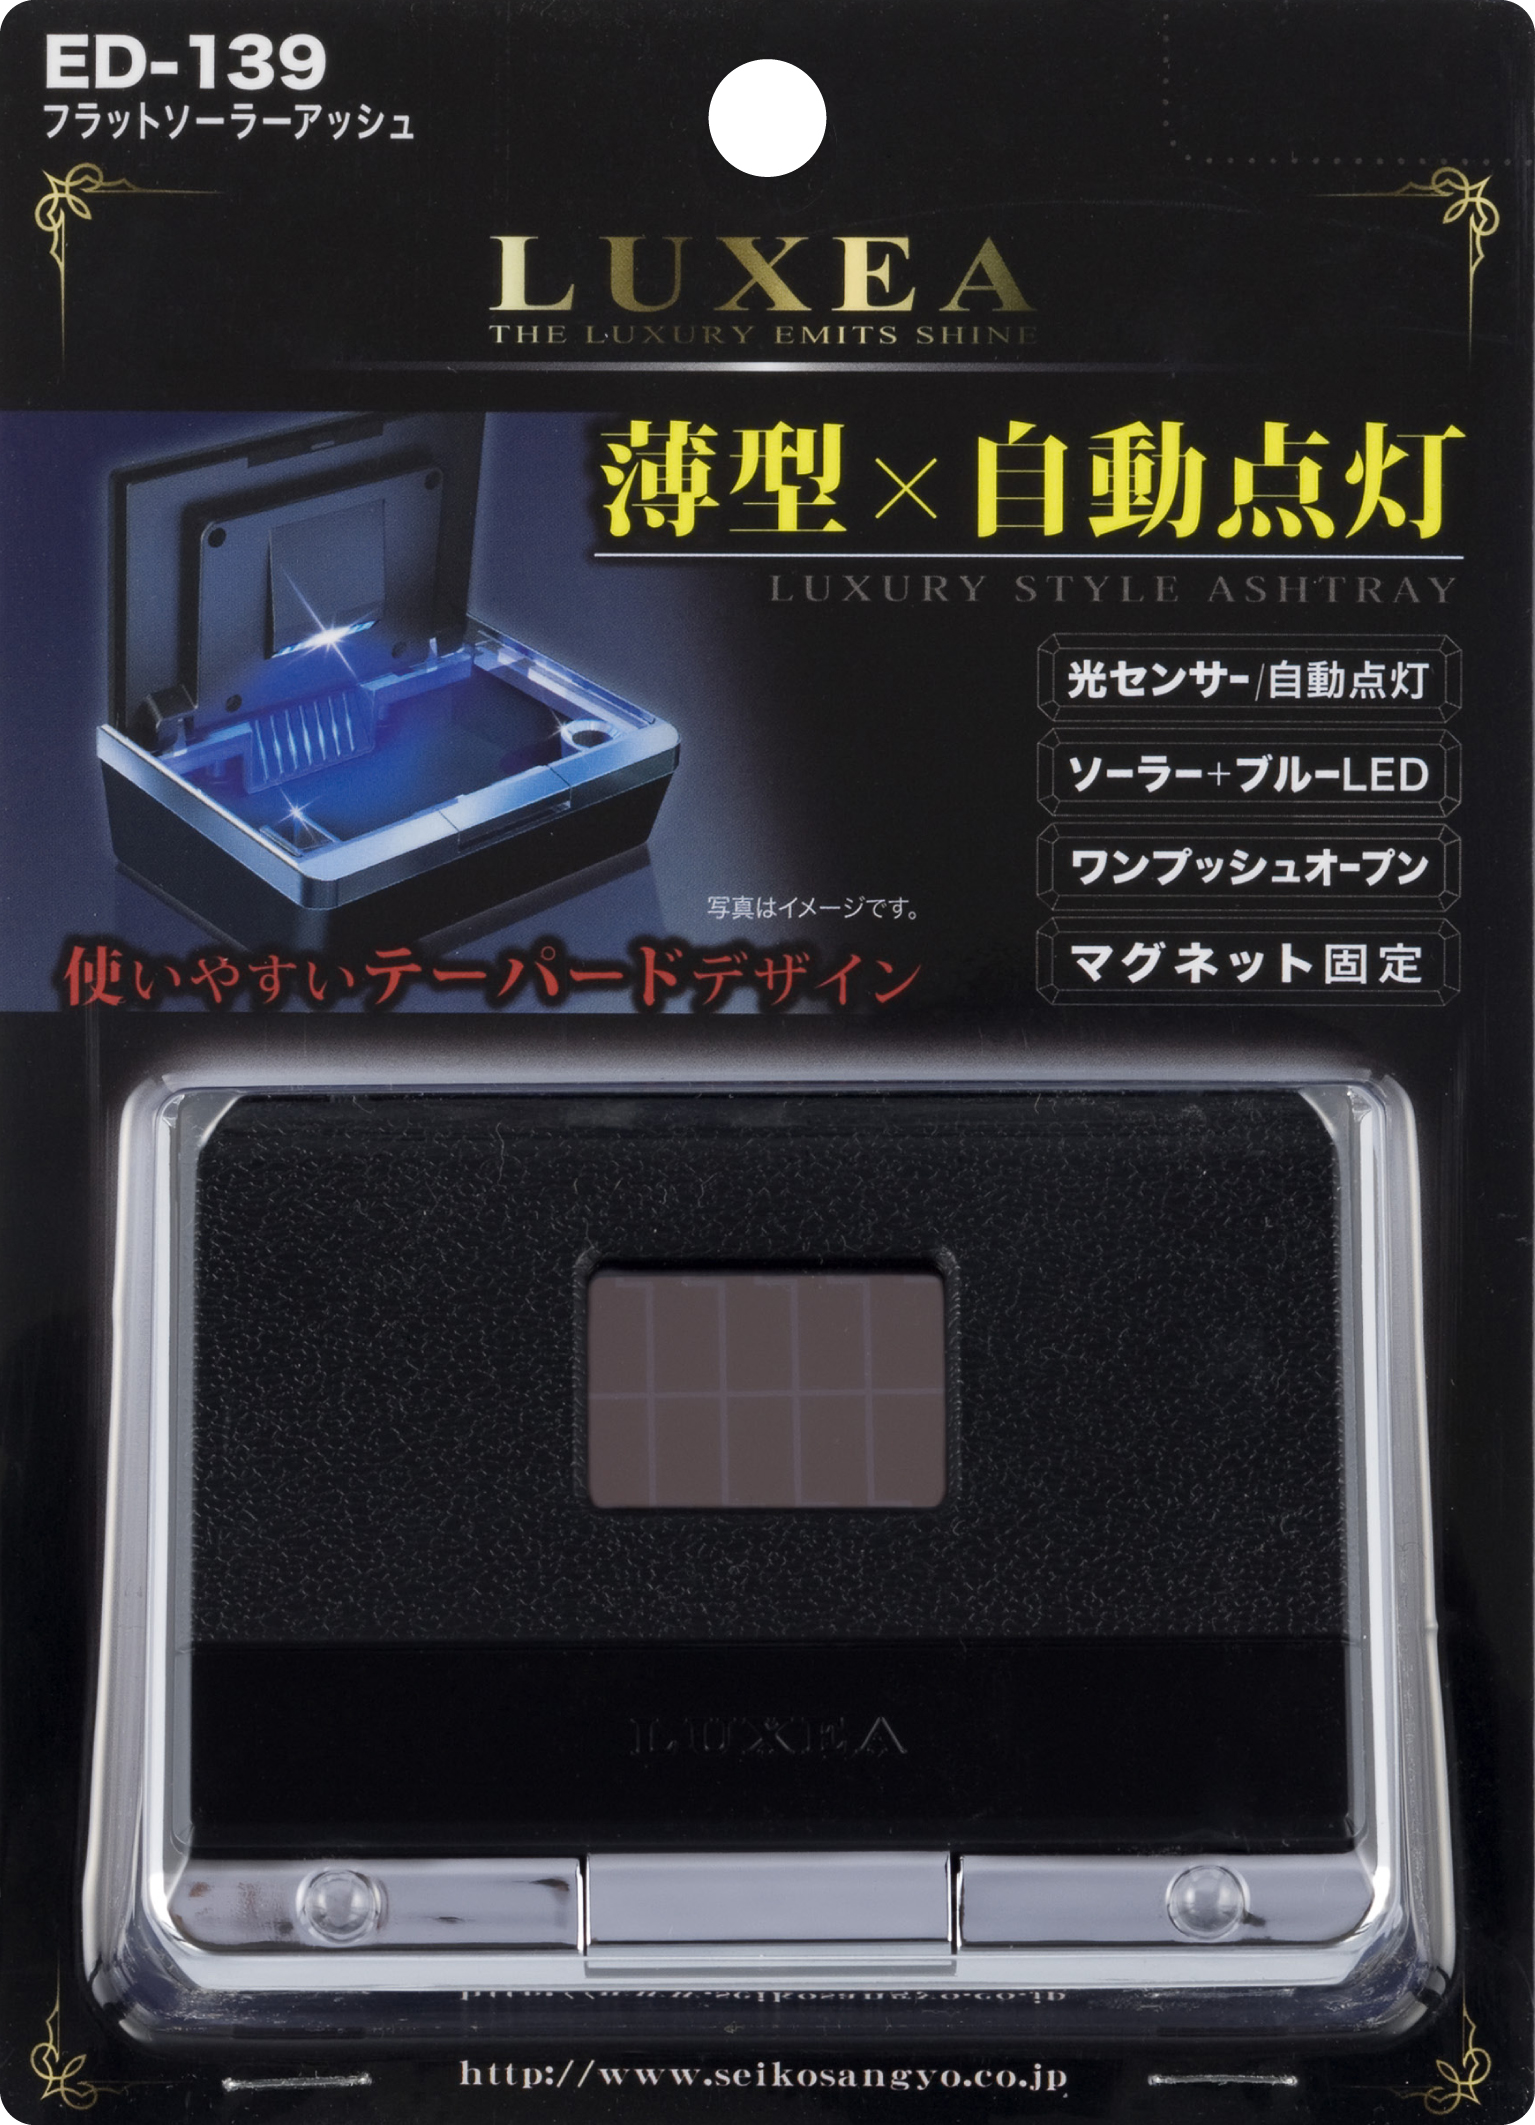 LTD ED-139 Flat Car Ashtray Solar Powered LED Automatically Activate Nighttime High Volume Designed in Japan EXEA SEIKOSANGYO CO.